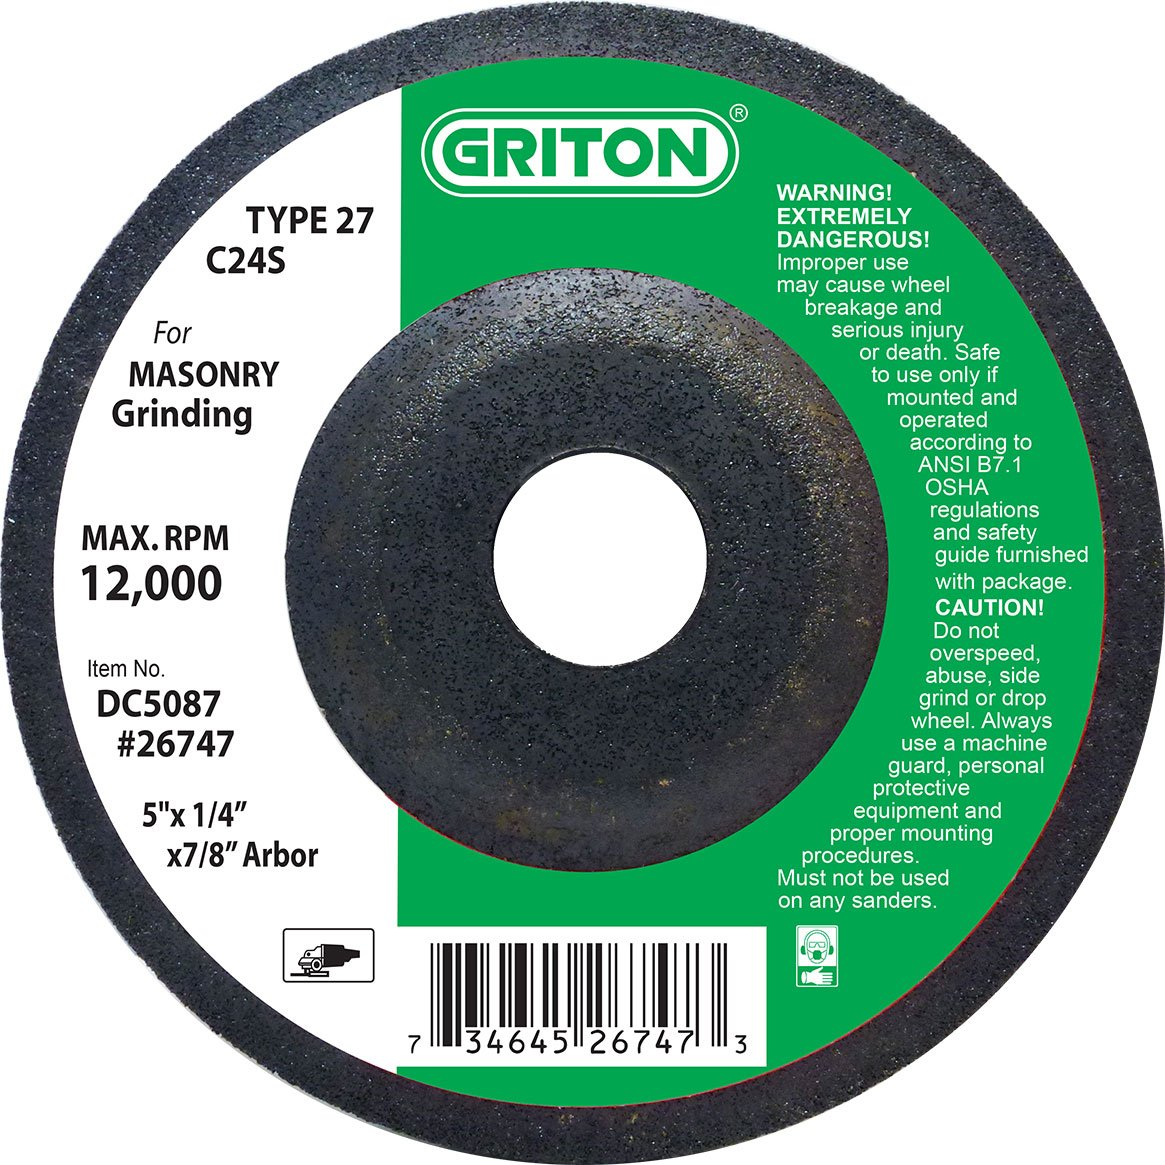 Griton DC5087 Type 27 Grinding Wheel Used on Masonry, Silicon Carbide, 12000 RPM, 5'' Diameter (Pack of 25)